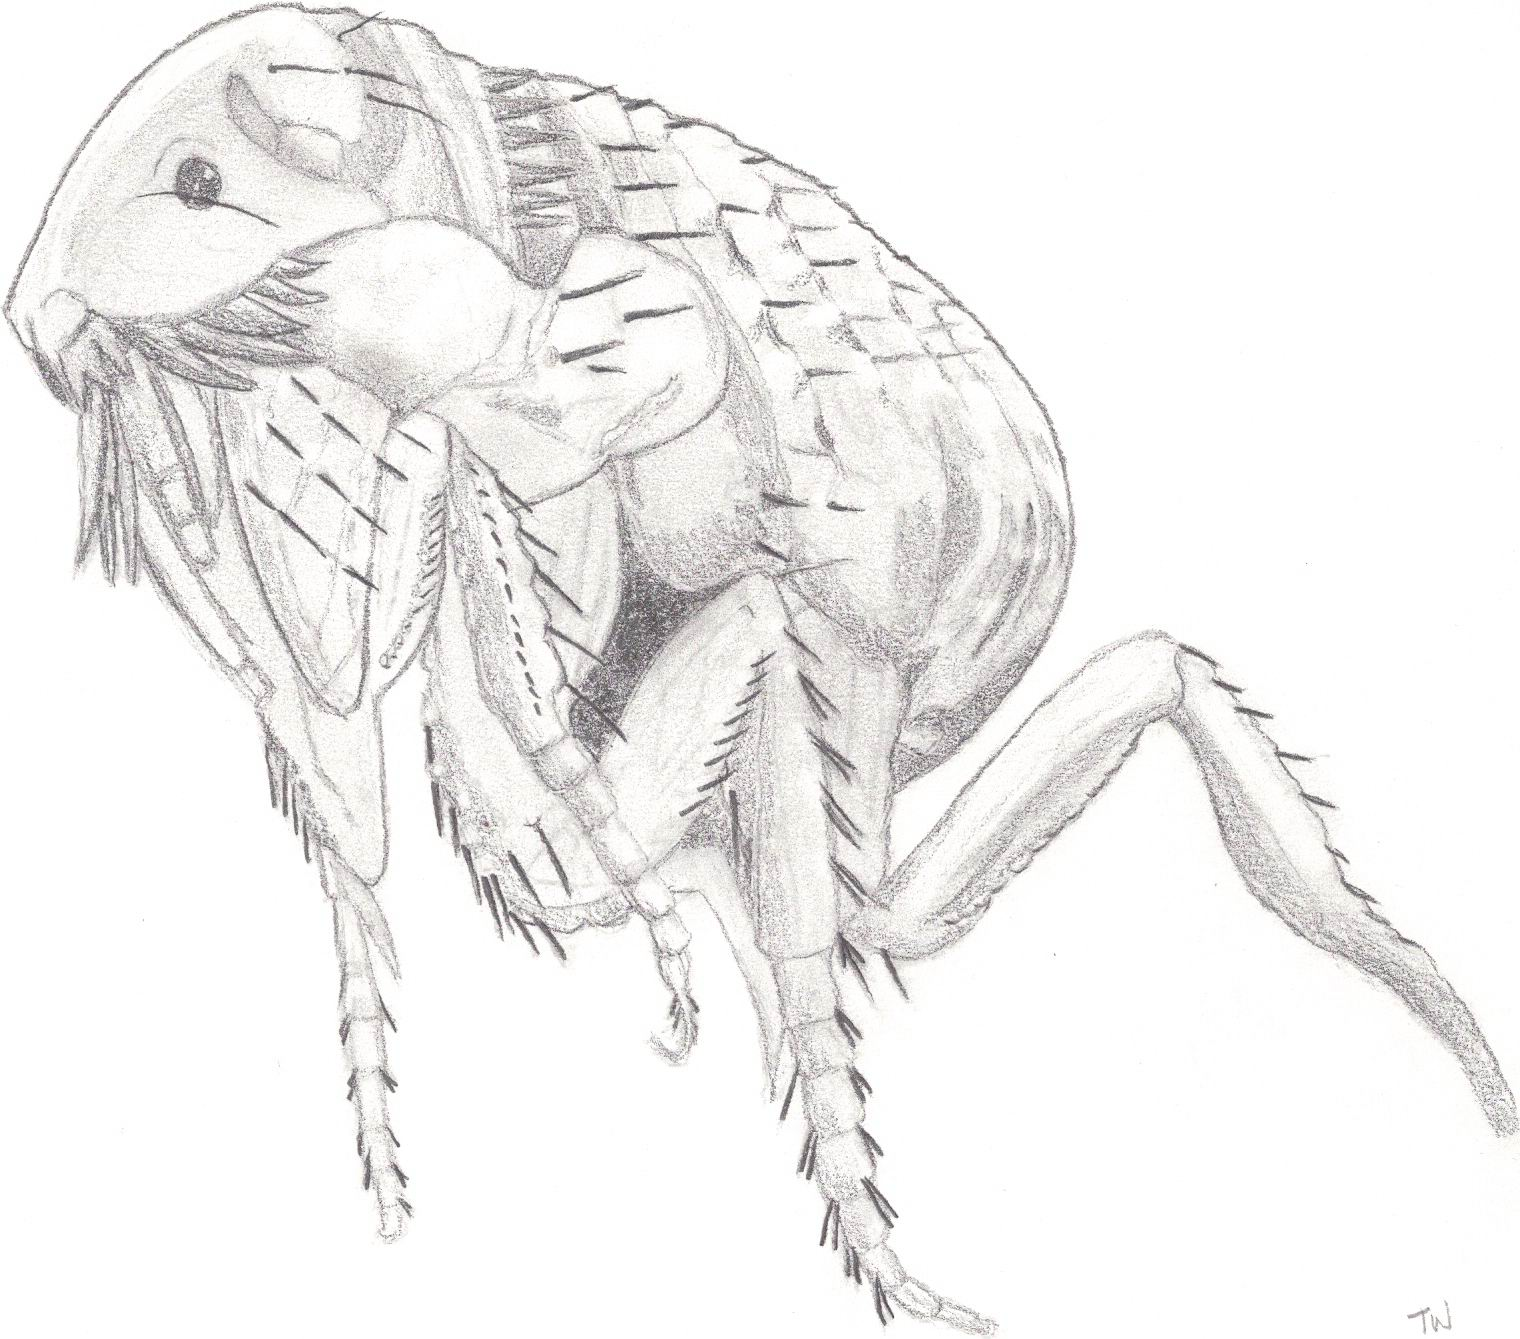 artists impression of a flea